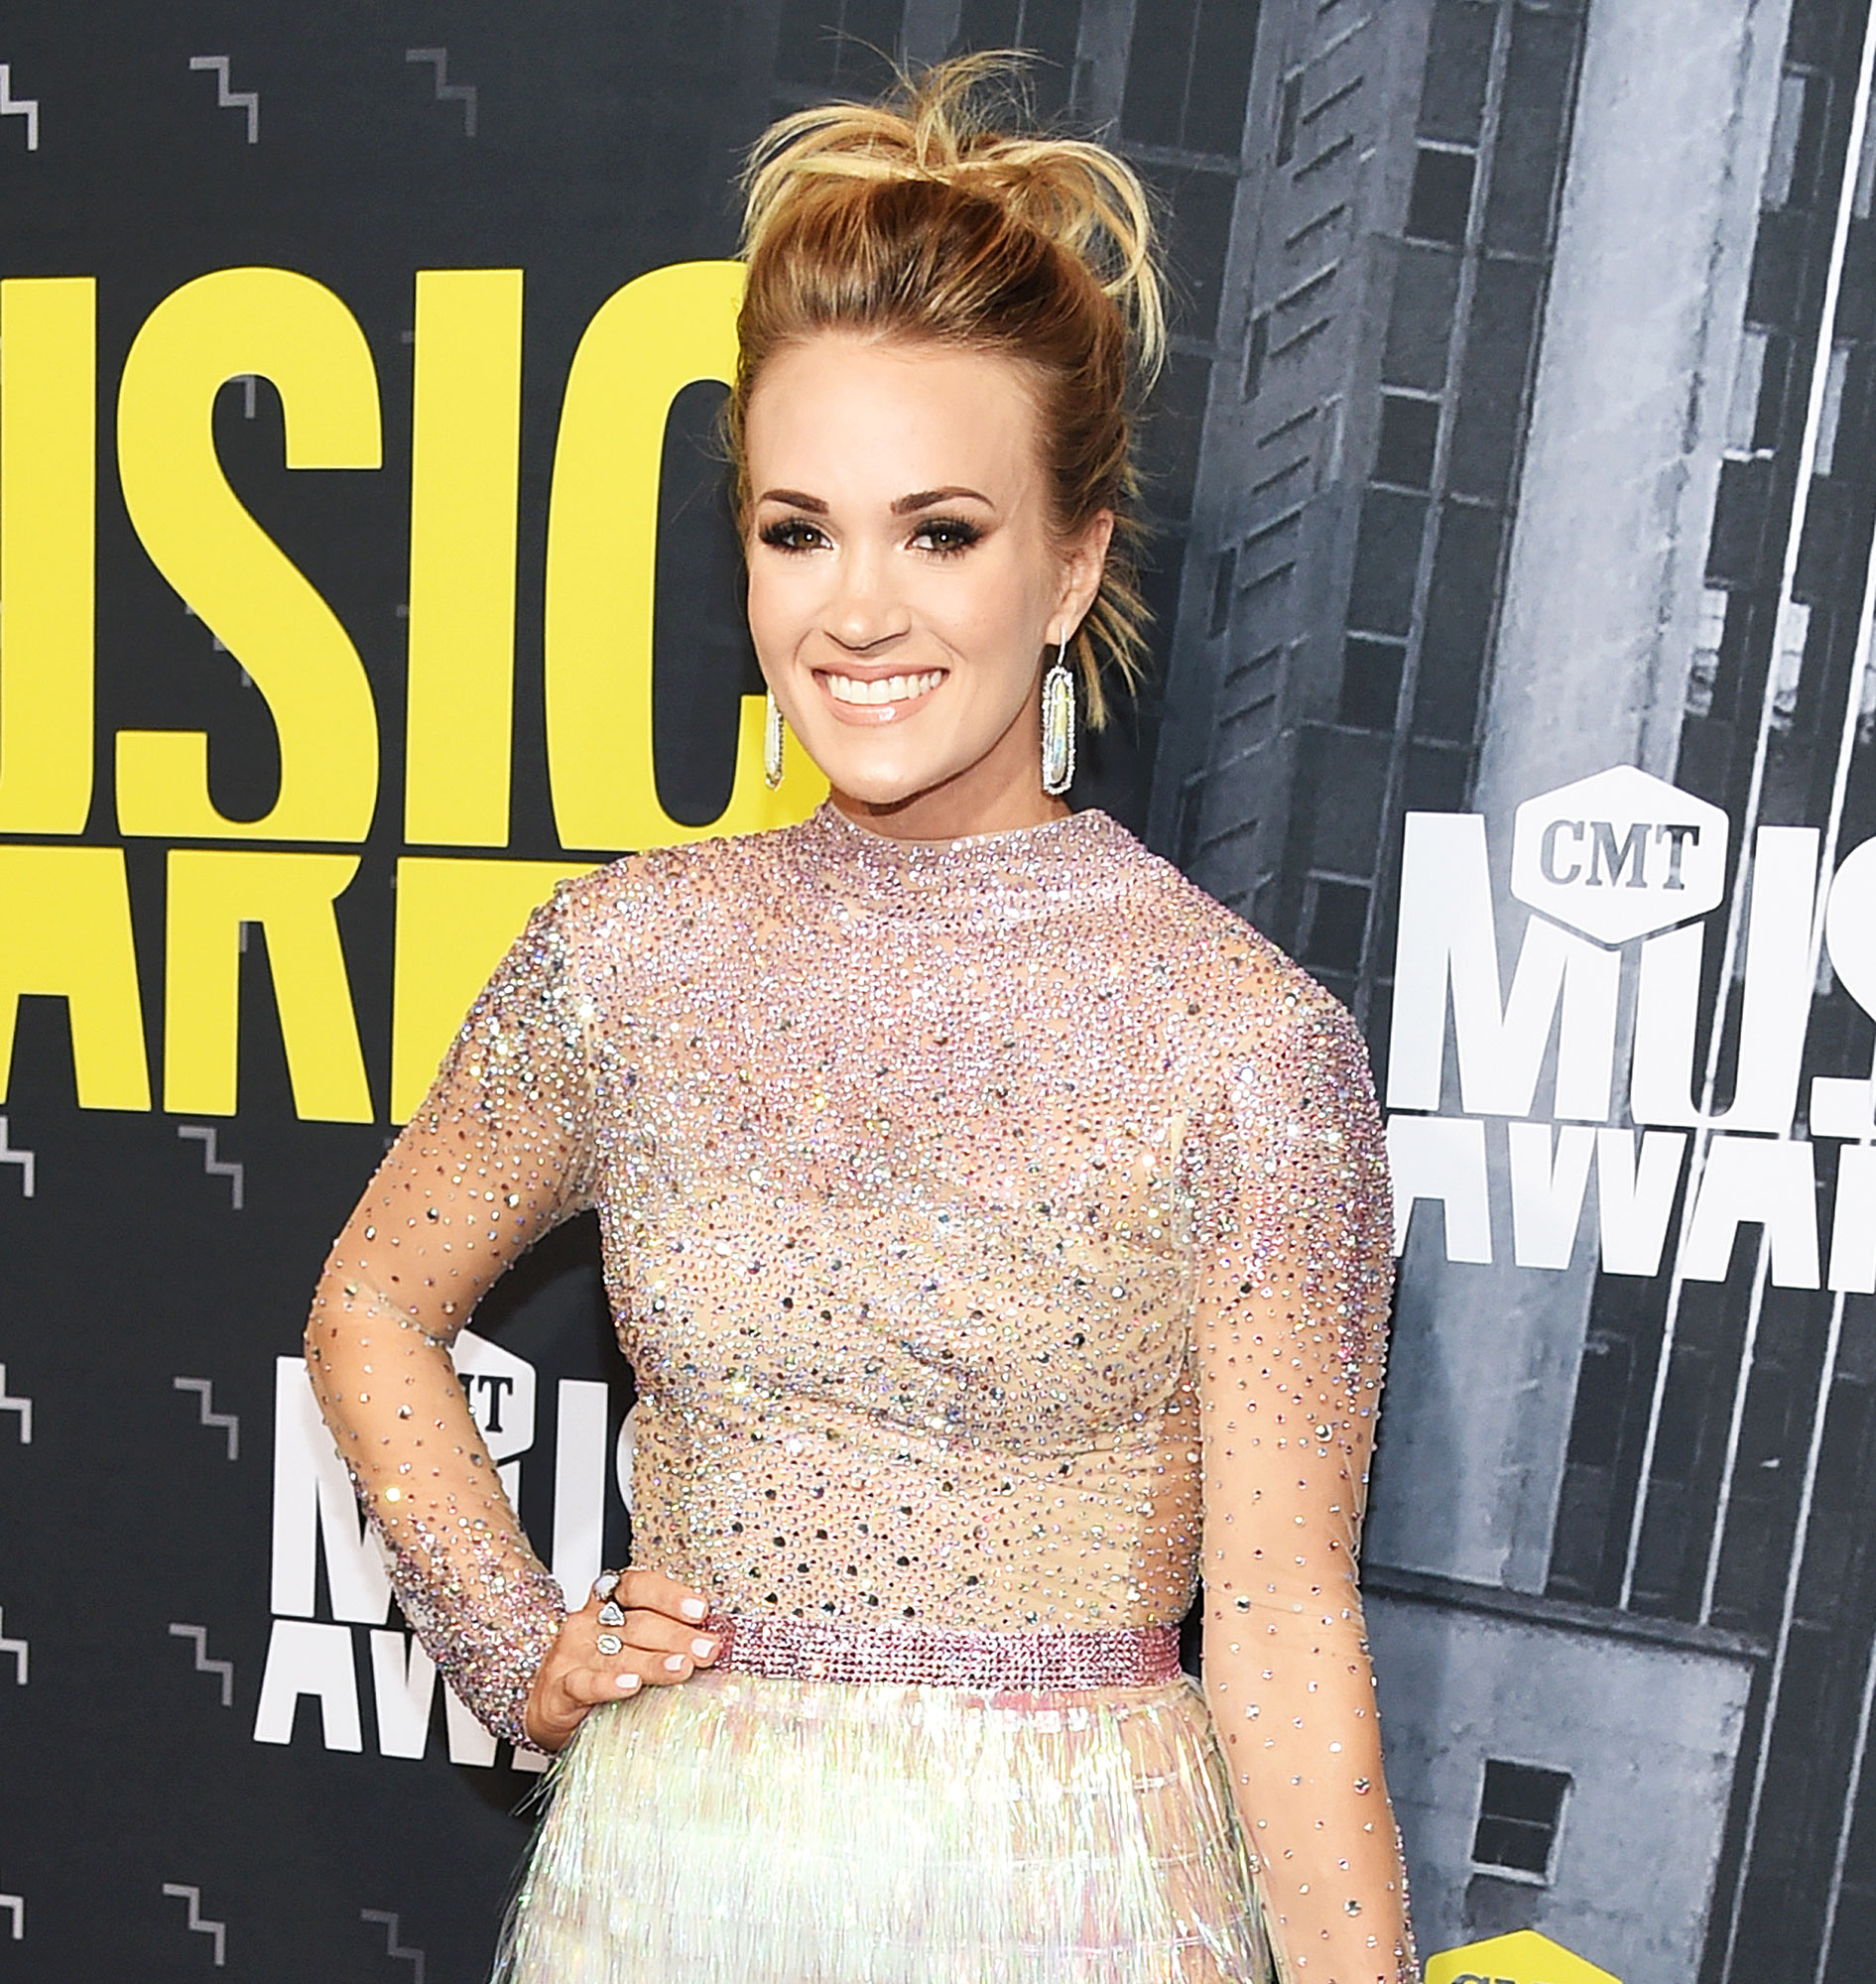 Carrie Underwood Stranger Drink Rookie Parenting Mistake